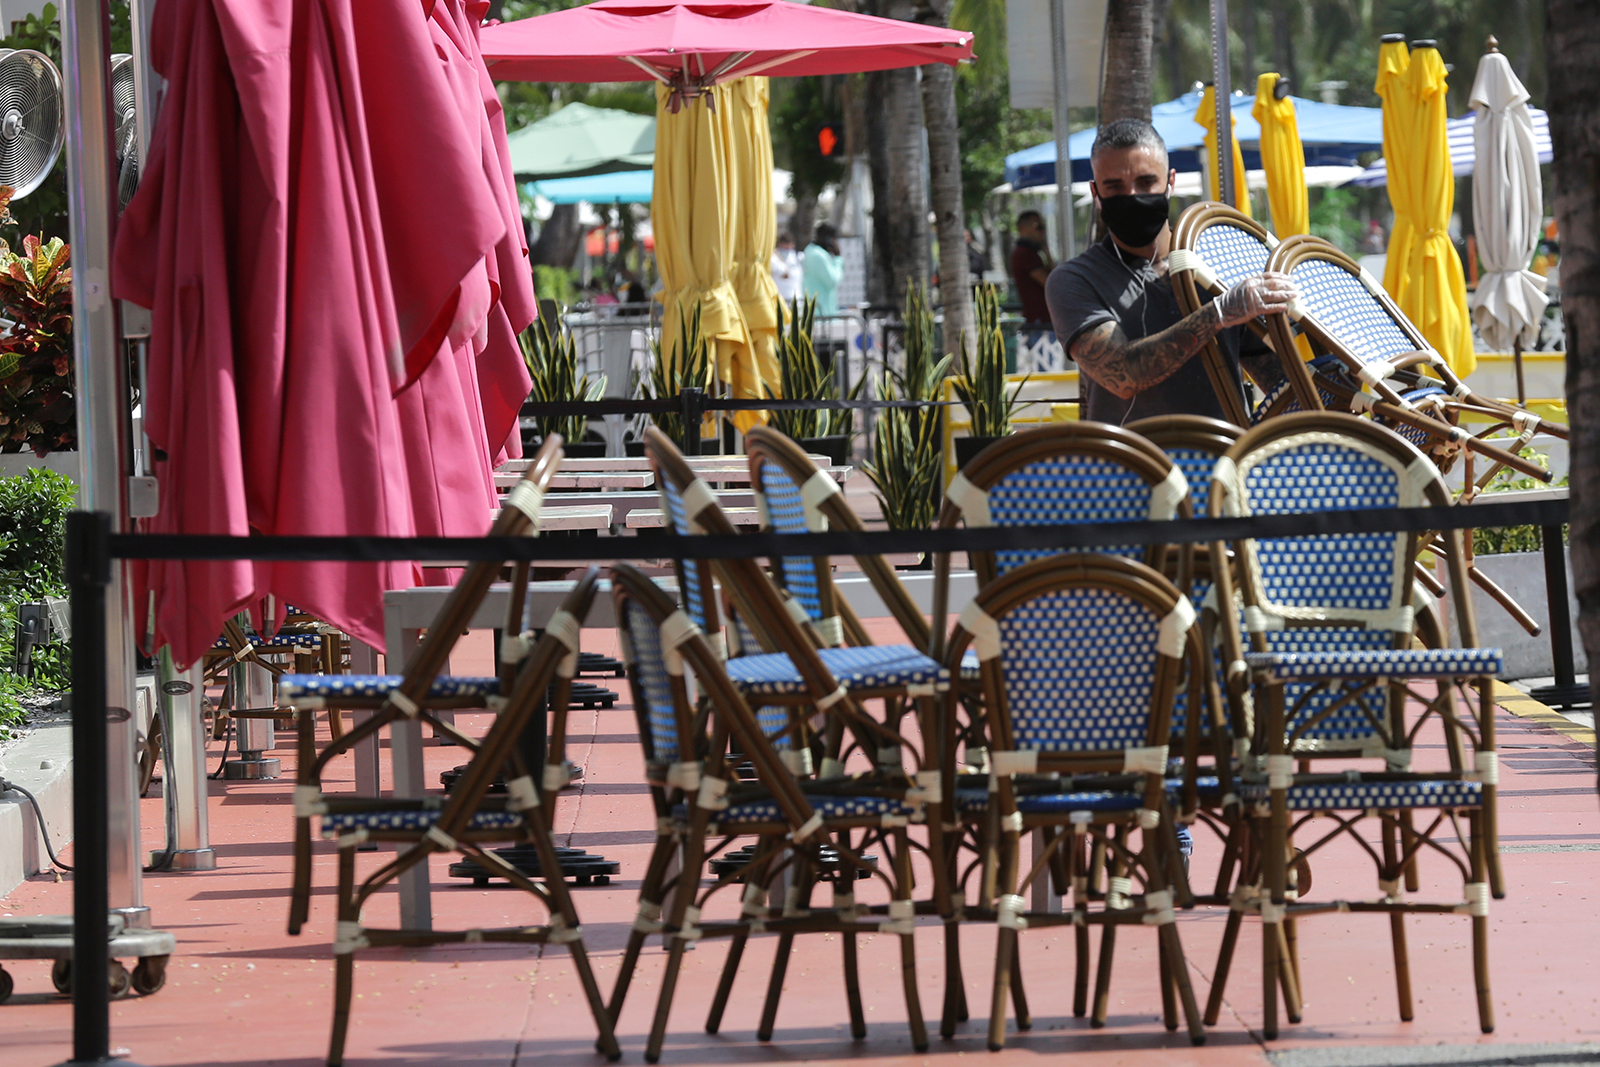 An employee at the Clevelander bar and restaurant stacks chairs as they have shut down due to public health concerns caused by Covid-19 in Miami Beach, Florida on July 13.